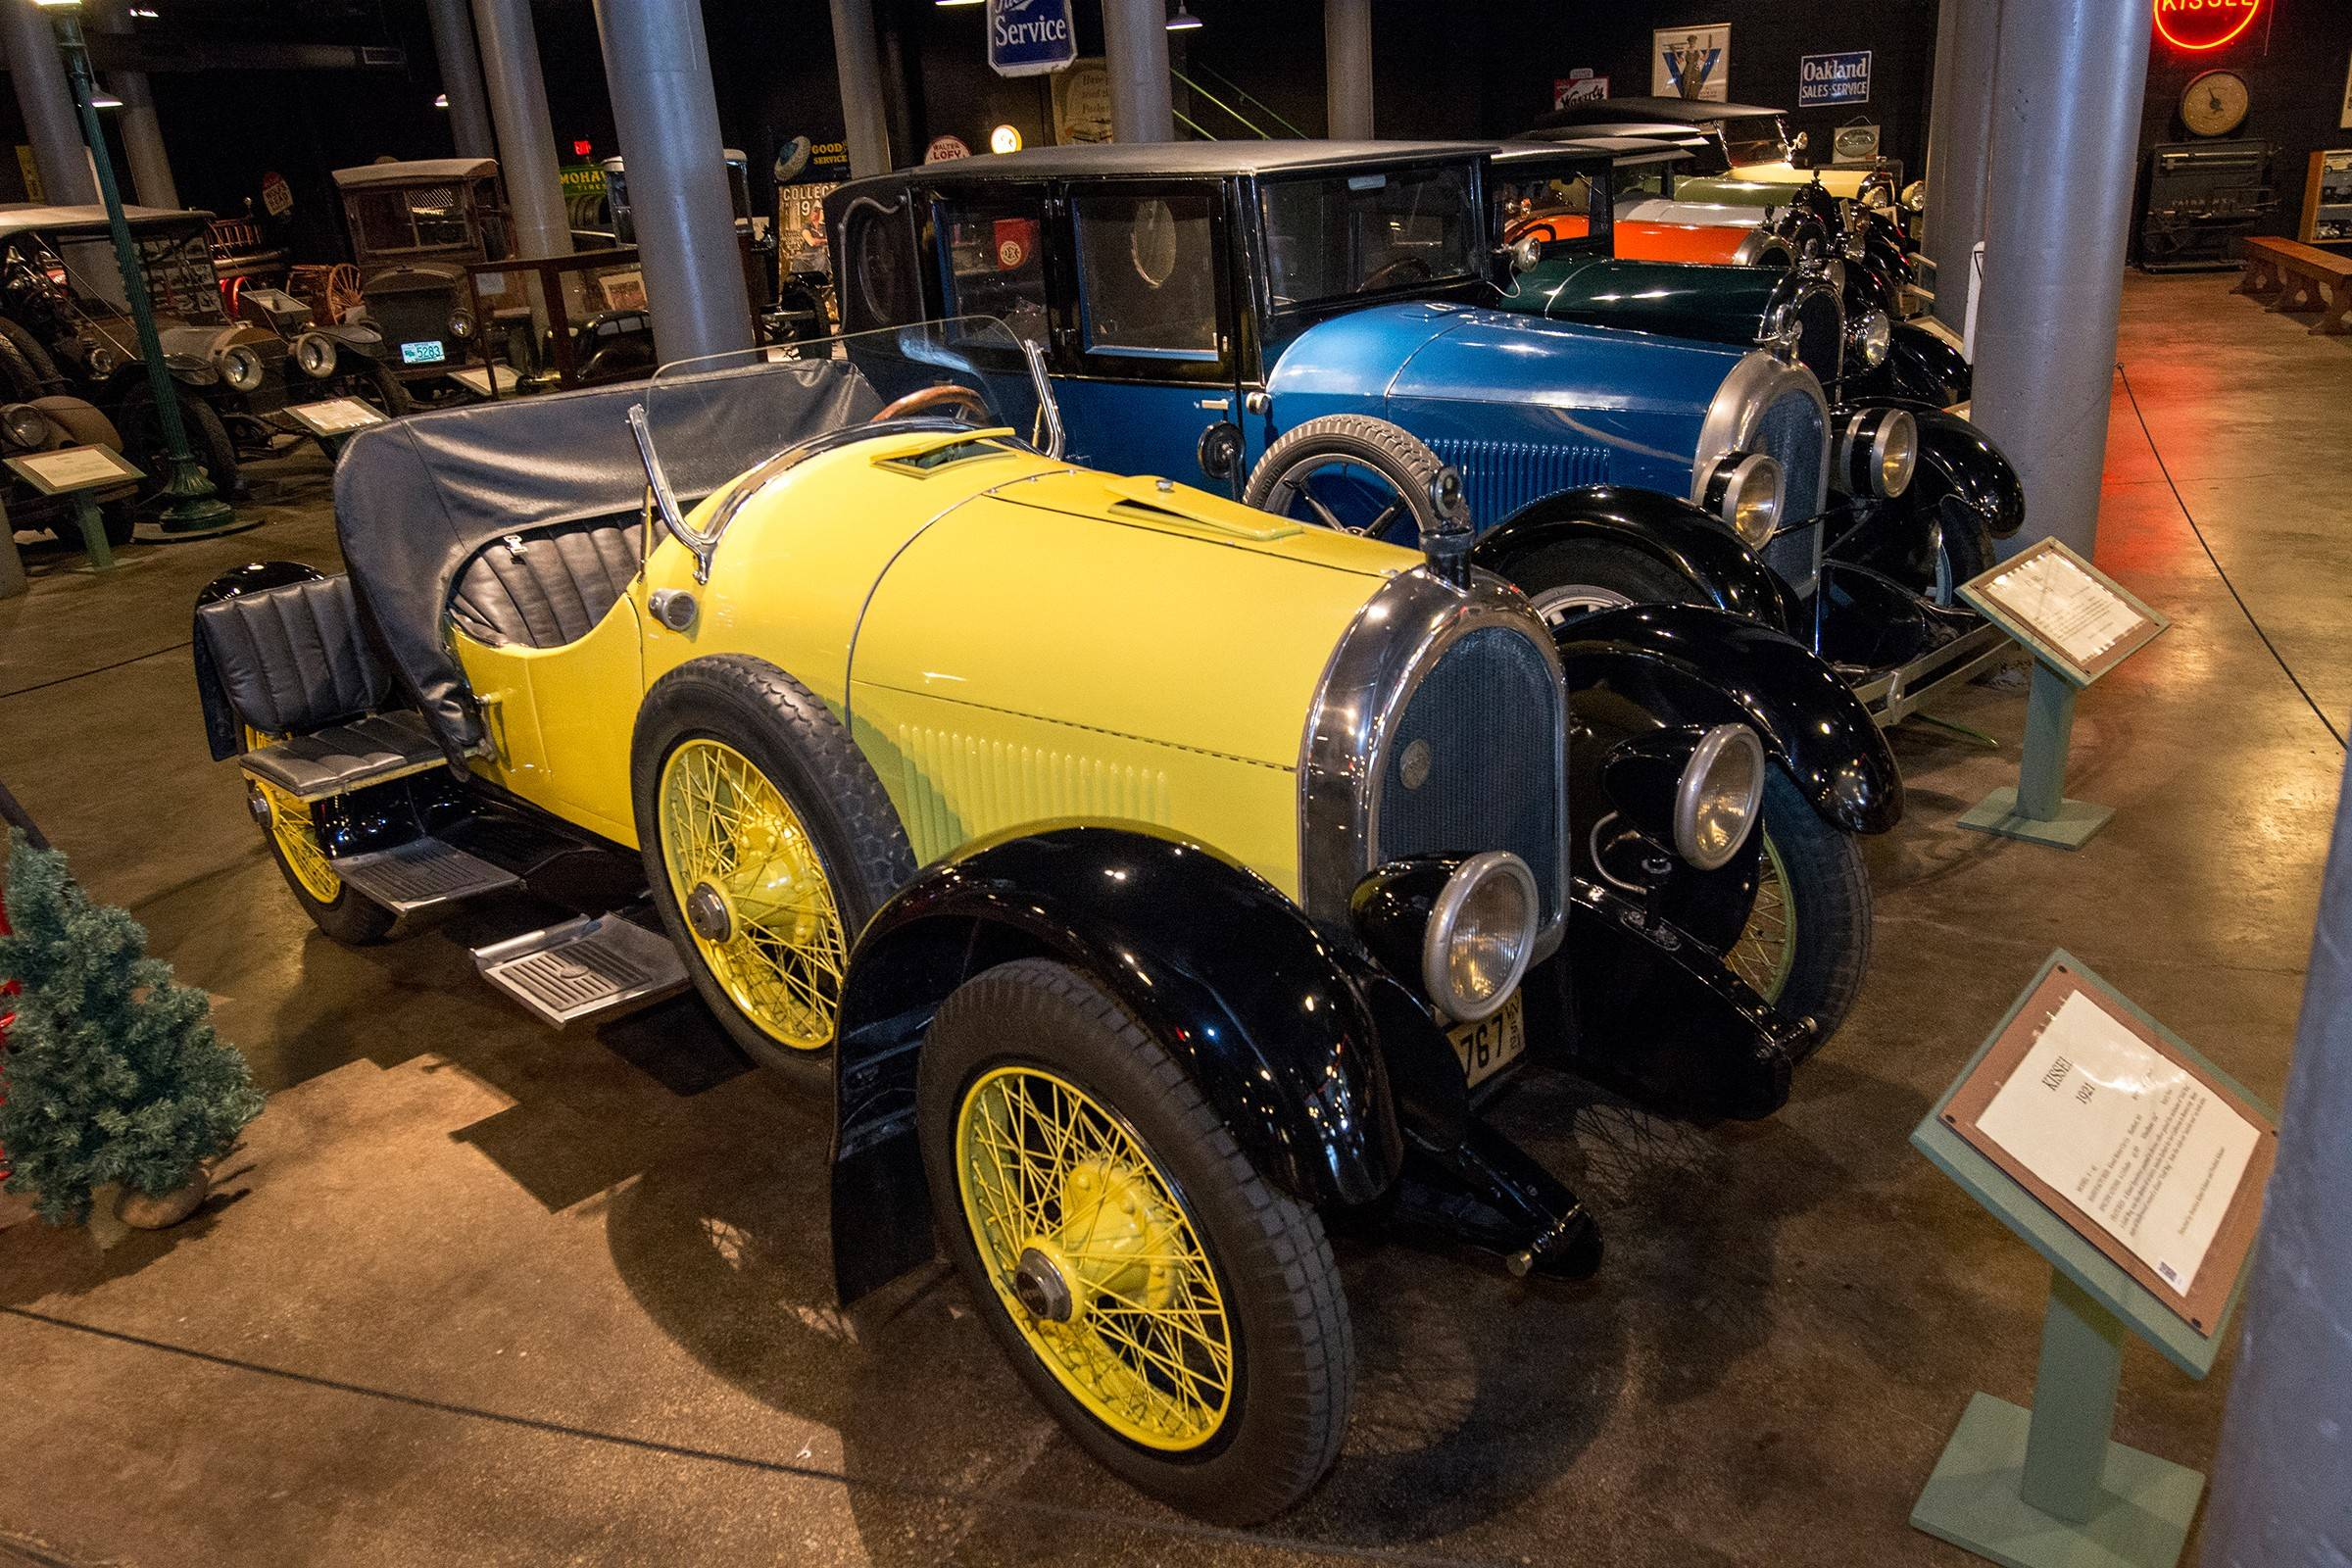 The largest auto museum in Wisconsin is the Wisconsin Automotive Museum, located in the sleepy little town of Hartford.